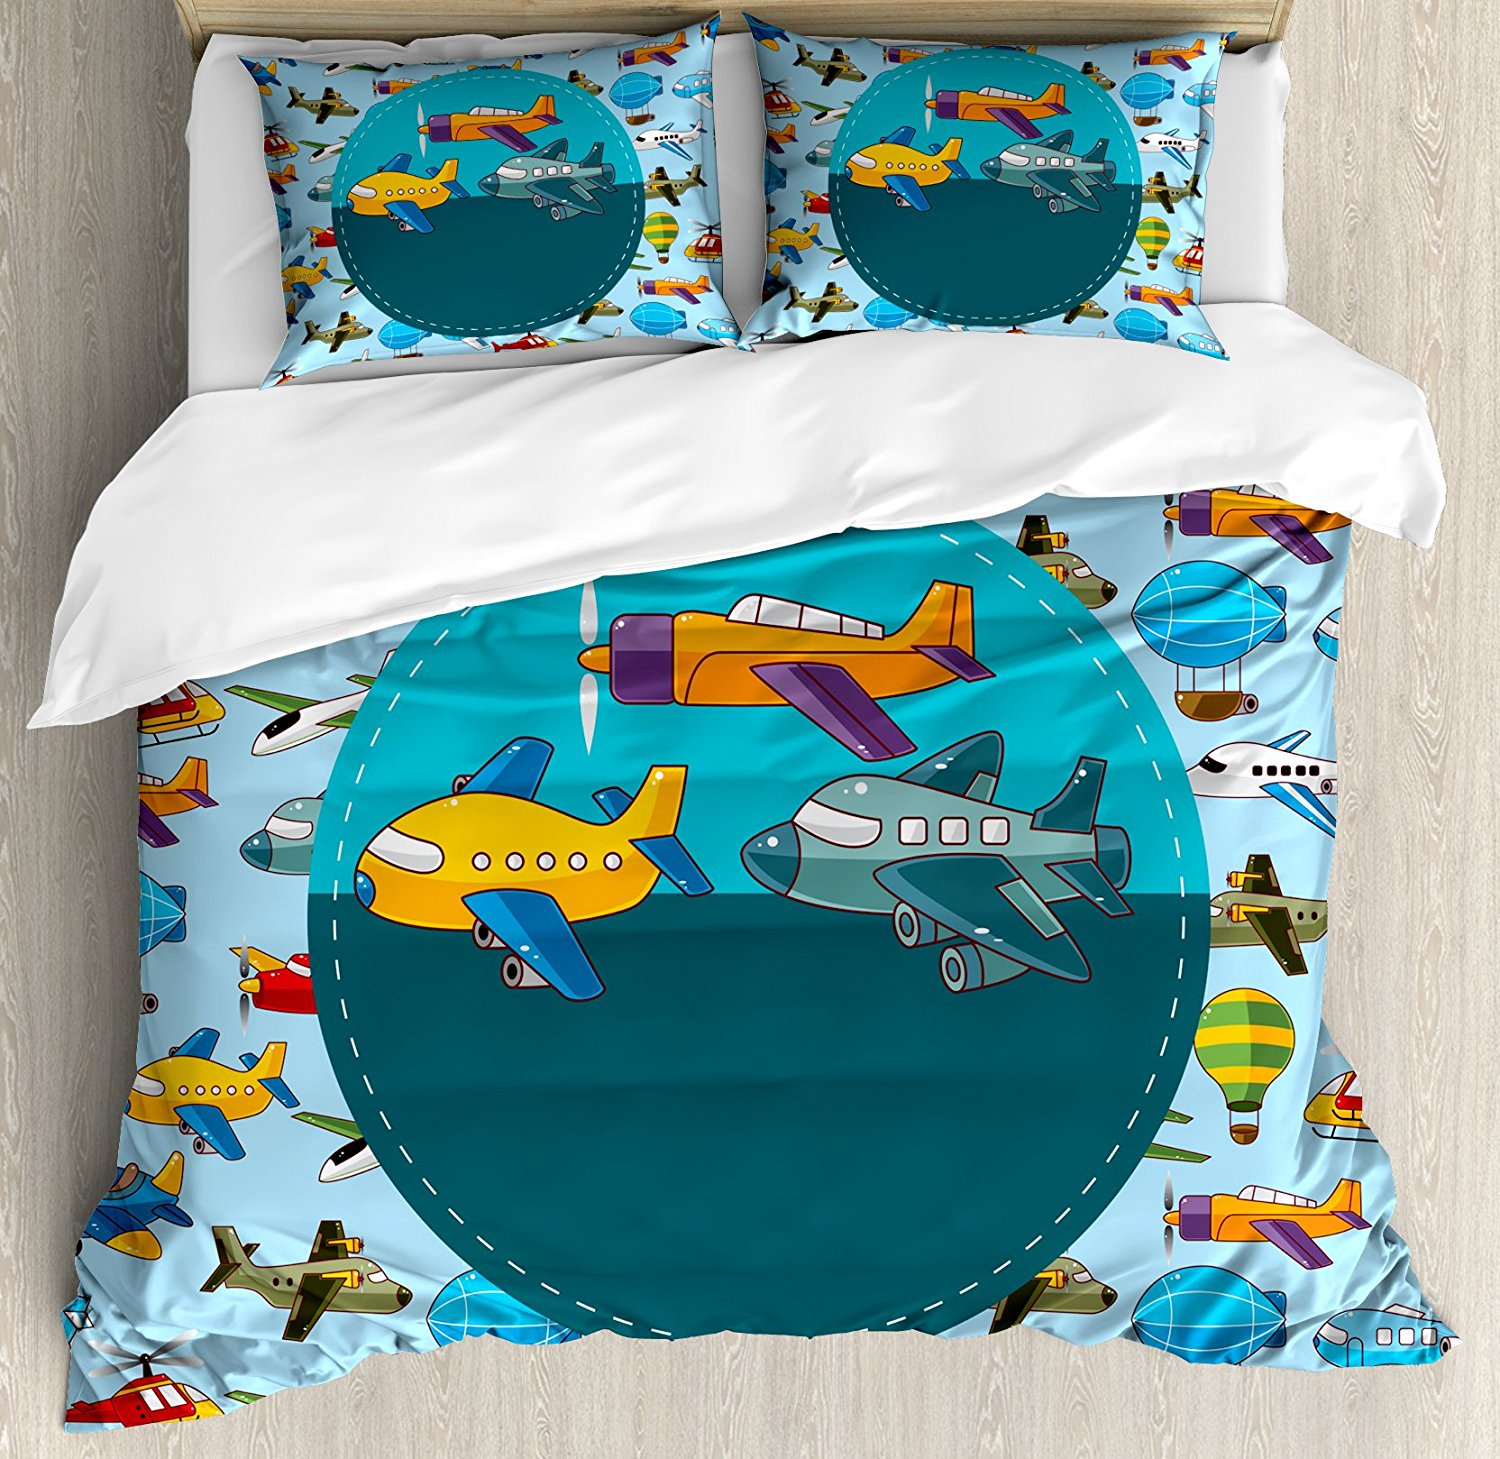 Kids Party Duvet Cover Set Colorful Retro Style Various Cartoon Airplanes Air Balloons Zeppelins Boys Kids Bedding Set